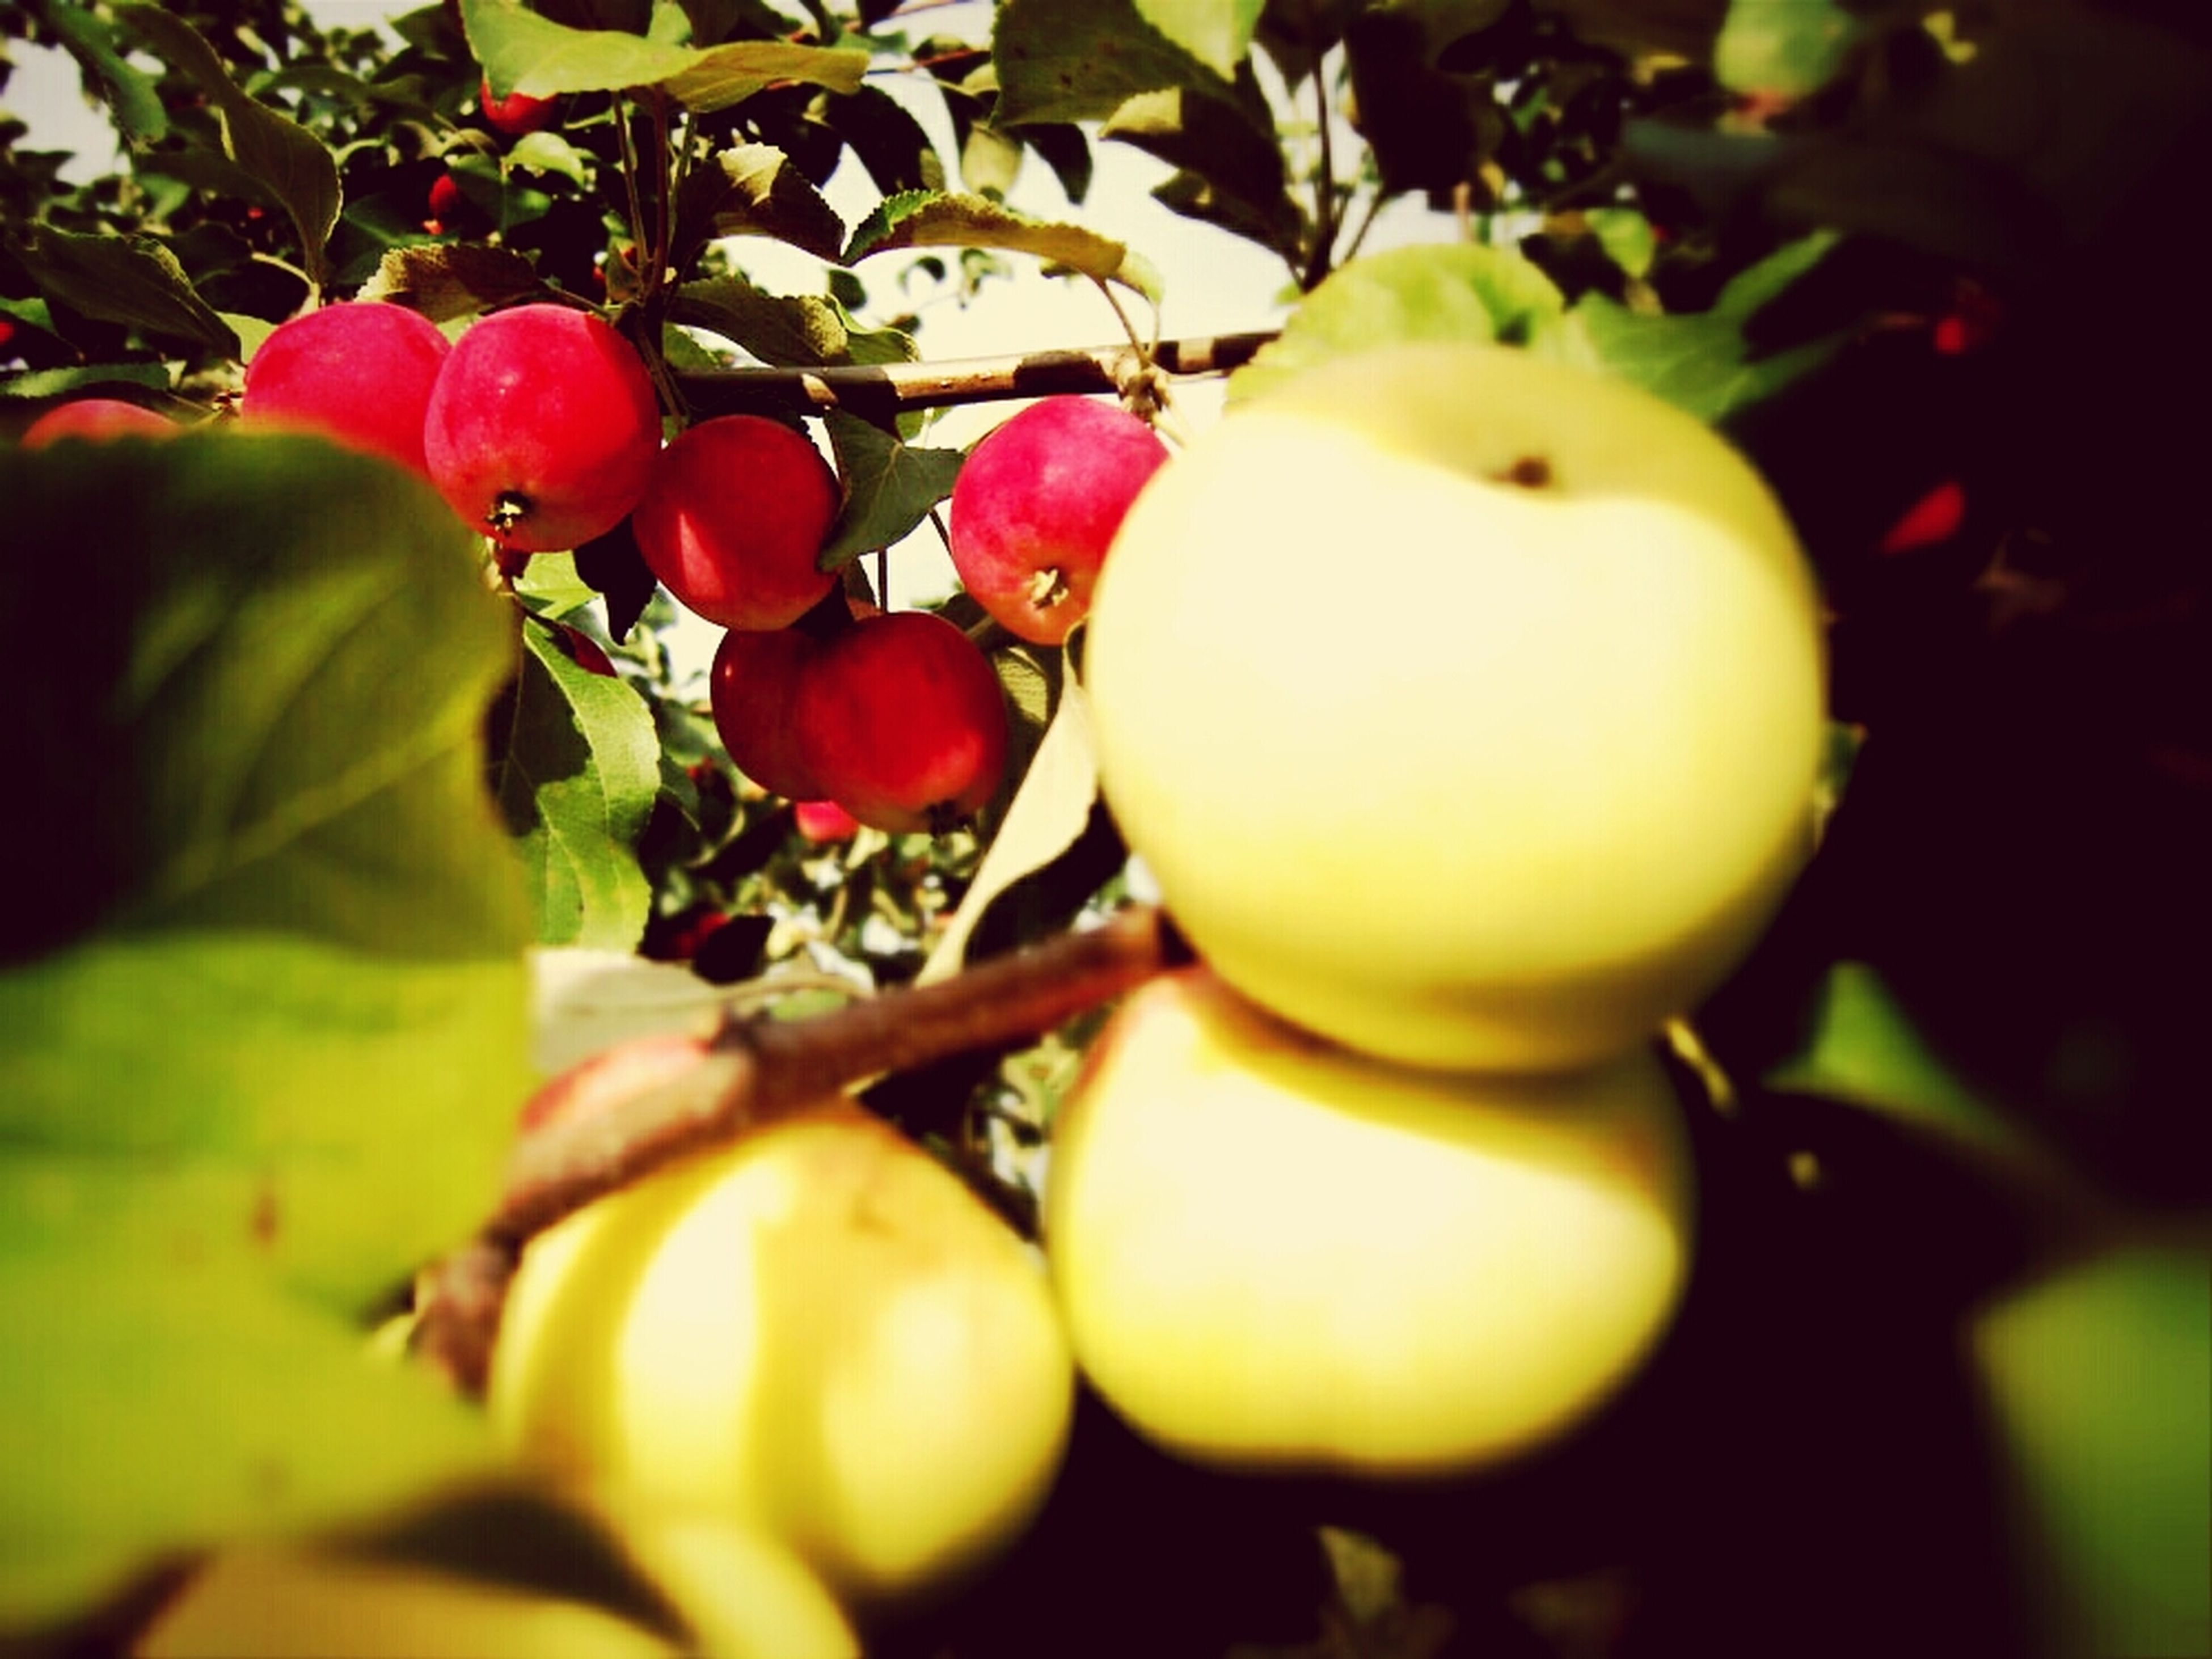 food and drink, freshness, fruit, growth, healthy eating, close-up, food, leaf, tree, branch, focus on foreground, plant, hanging, nature, selective focus, no people, stem, day, ripe, growing